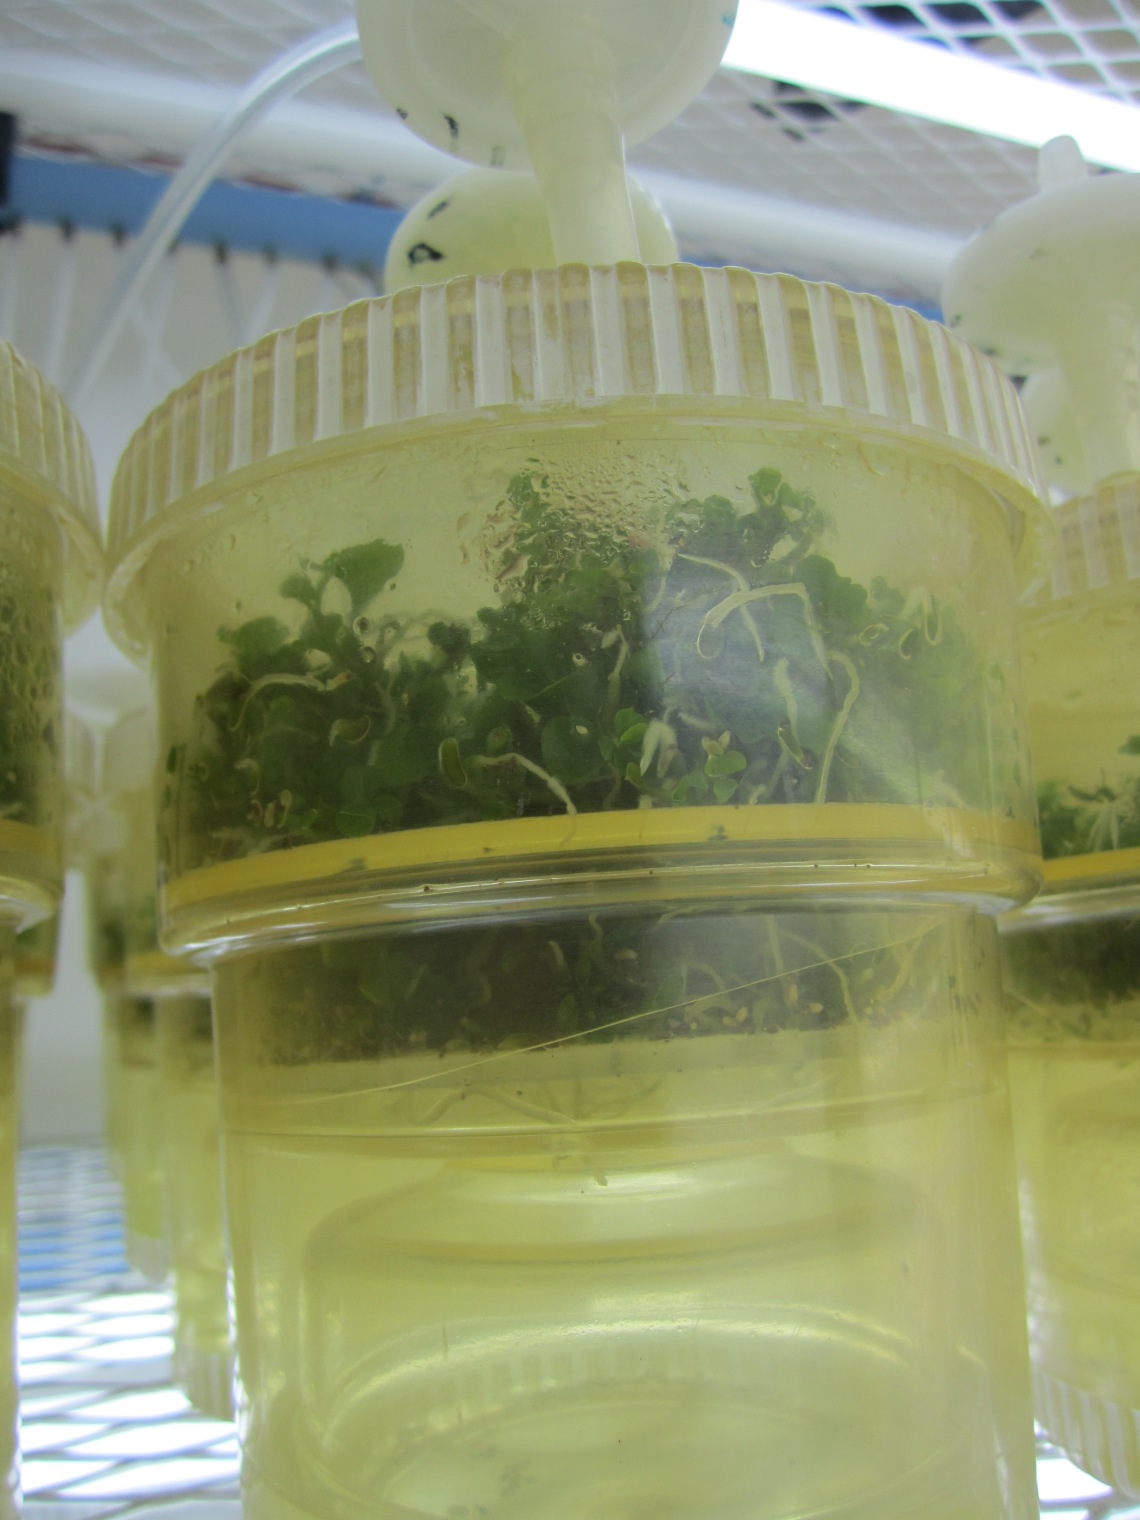 Hybrid plantlets generated via somatic embryogenesis